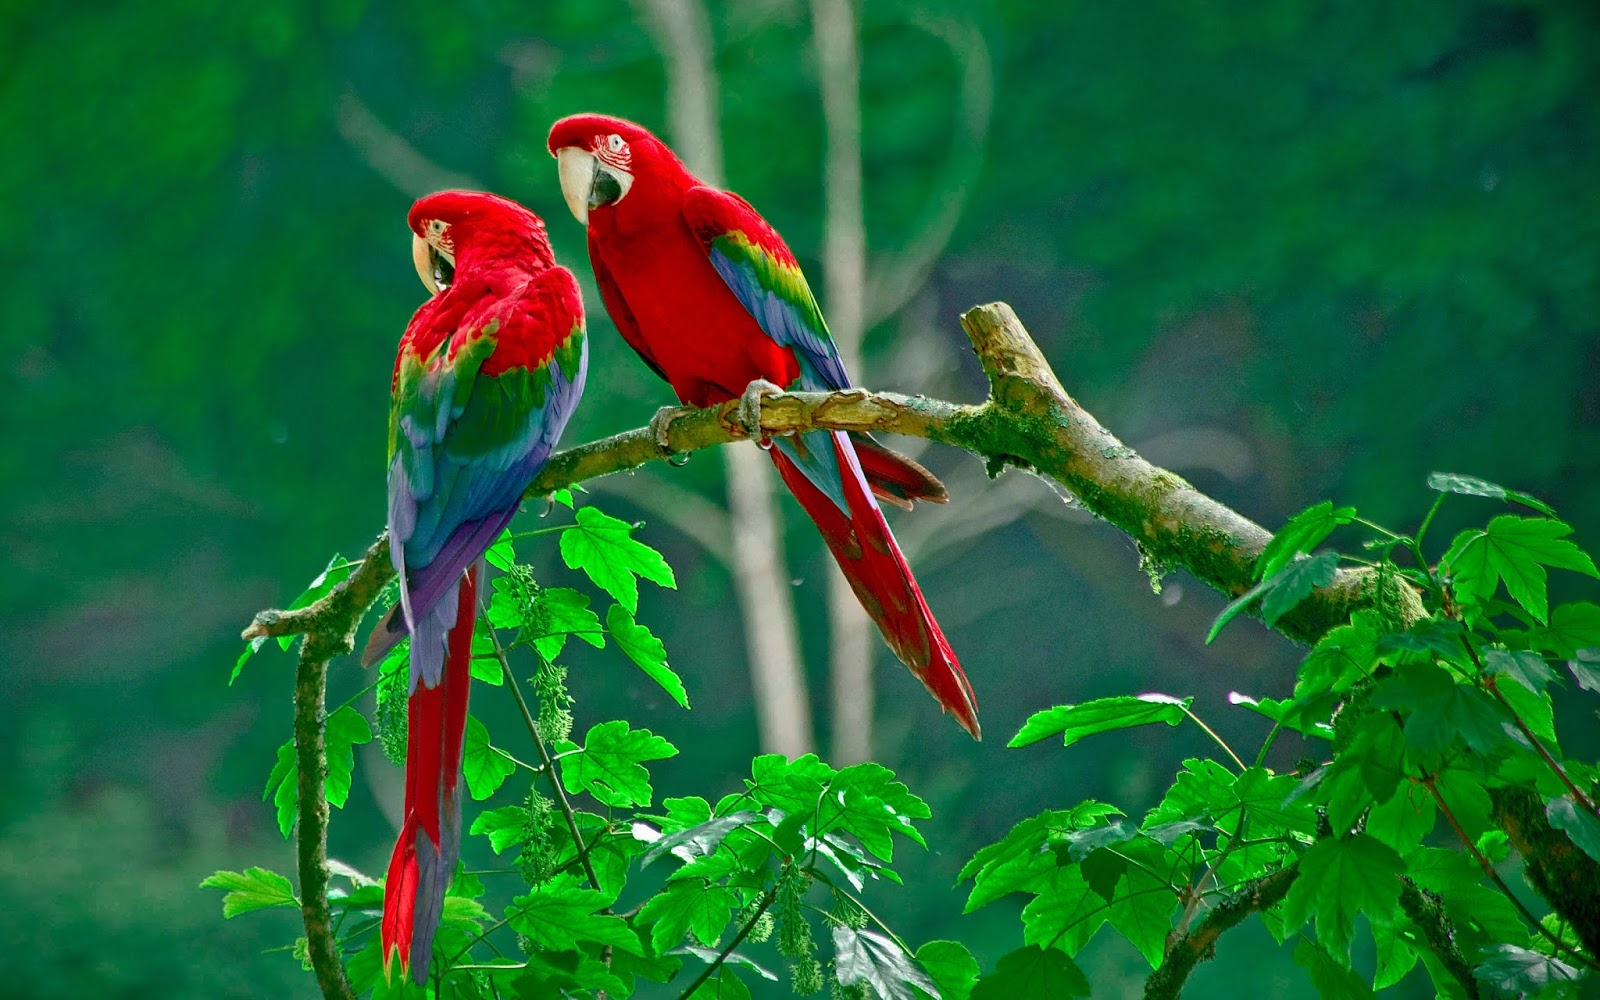 51 Birds Hd Wallpaper Love Bird Photos And Wallpaperimage Top Hd